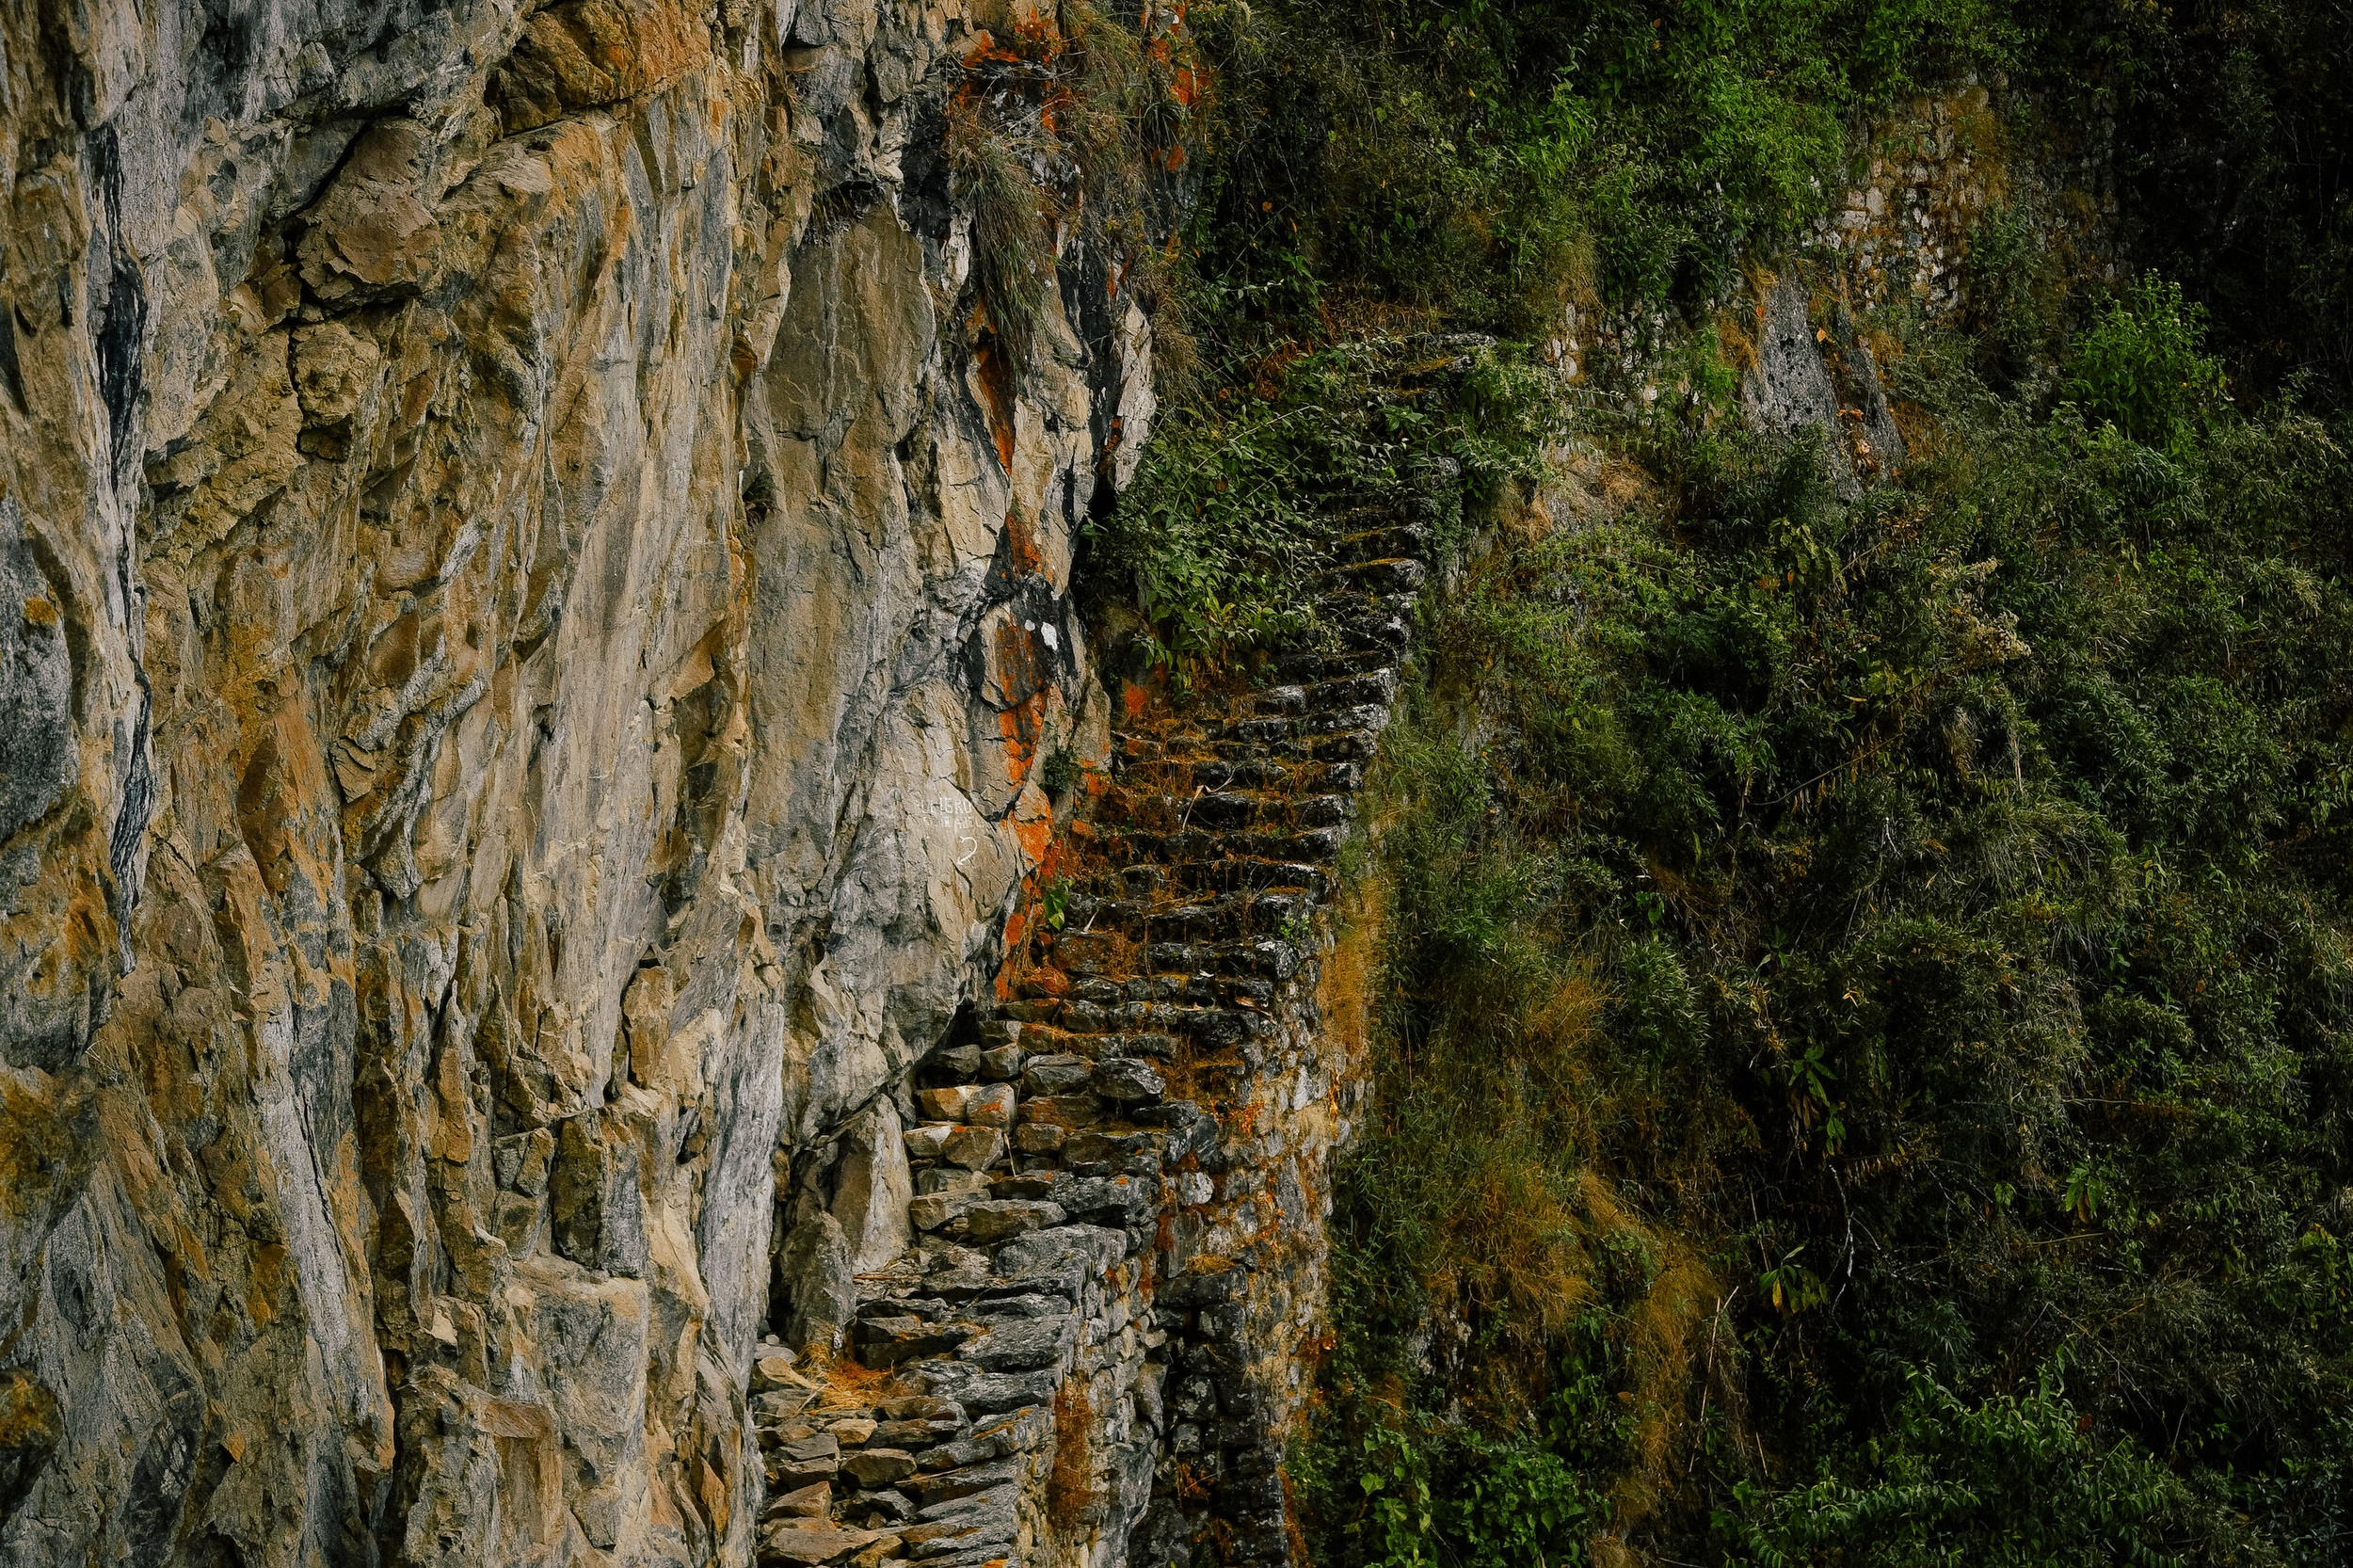 inca trail steps along the mountain